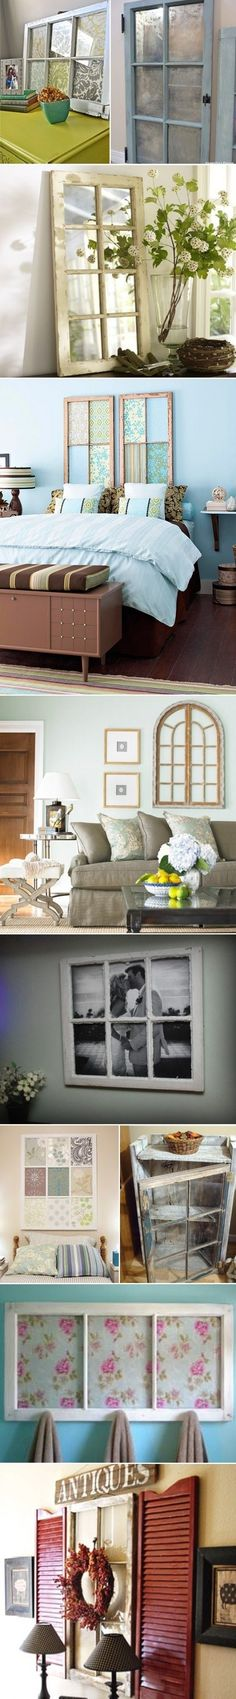 Ideas for Window Recycling Decor